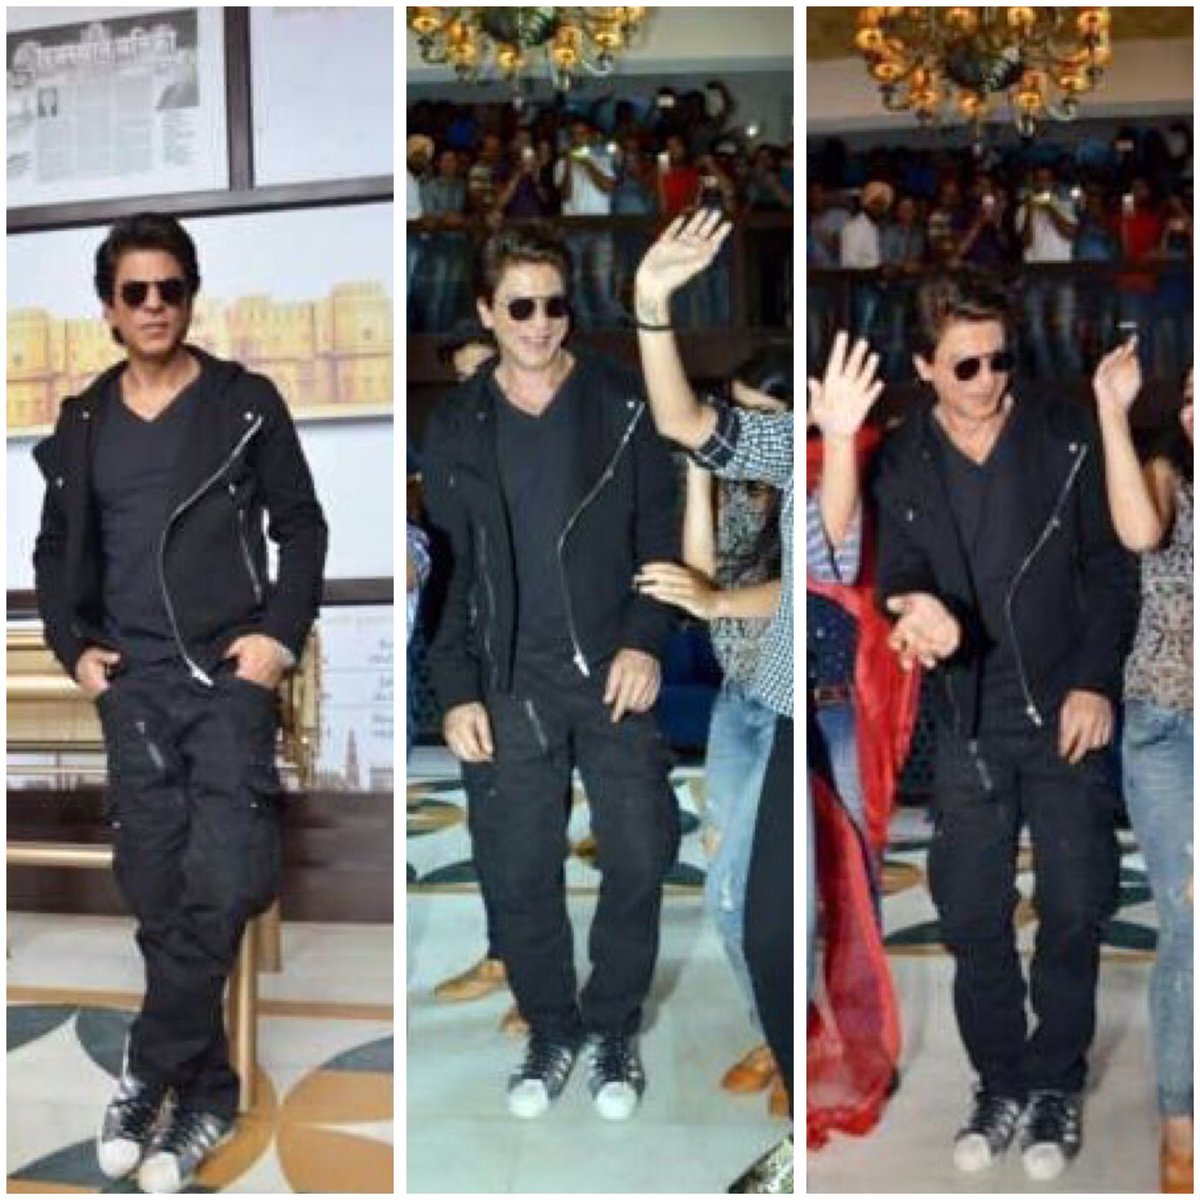 #Throwback during #JHMS promotions: SRK looks sexy, smashing &amp; definitely killing in the causal attire,King Khan is the master of cool looks <br>http://pic.twitter.com/IQgXnEslHm